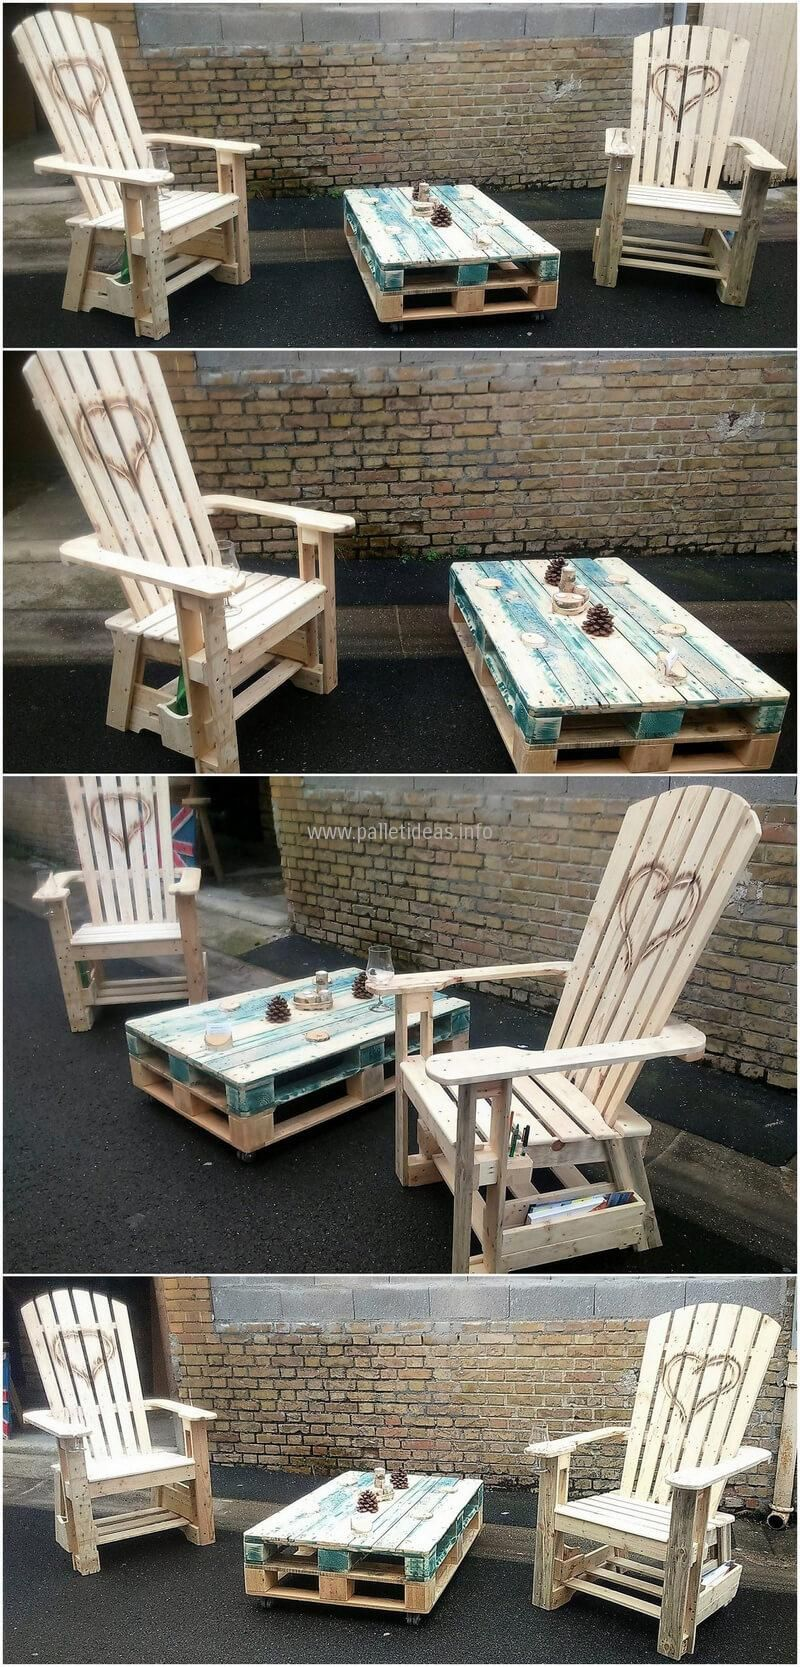 shipping pallet furniture ideas. Awesome Ideas For Reusing Shipping Wooden Pallets Pallet Furniture F